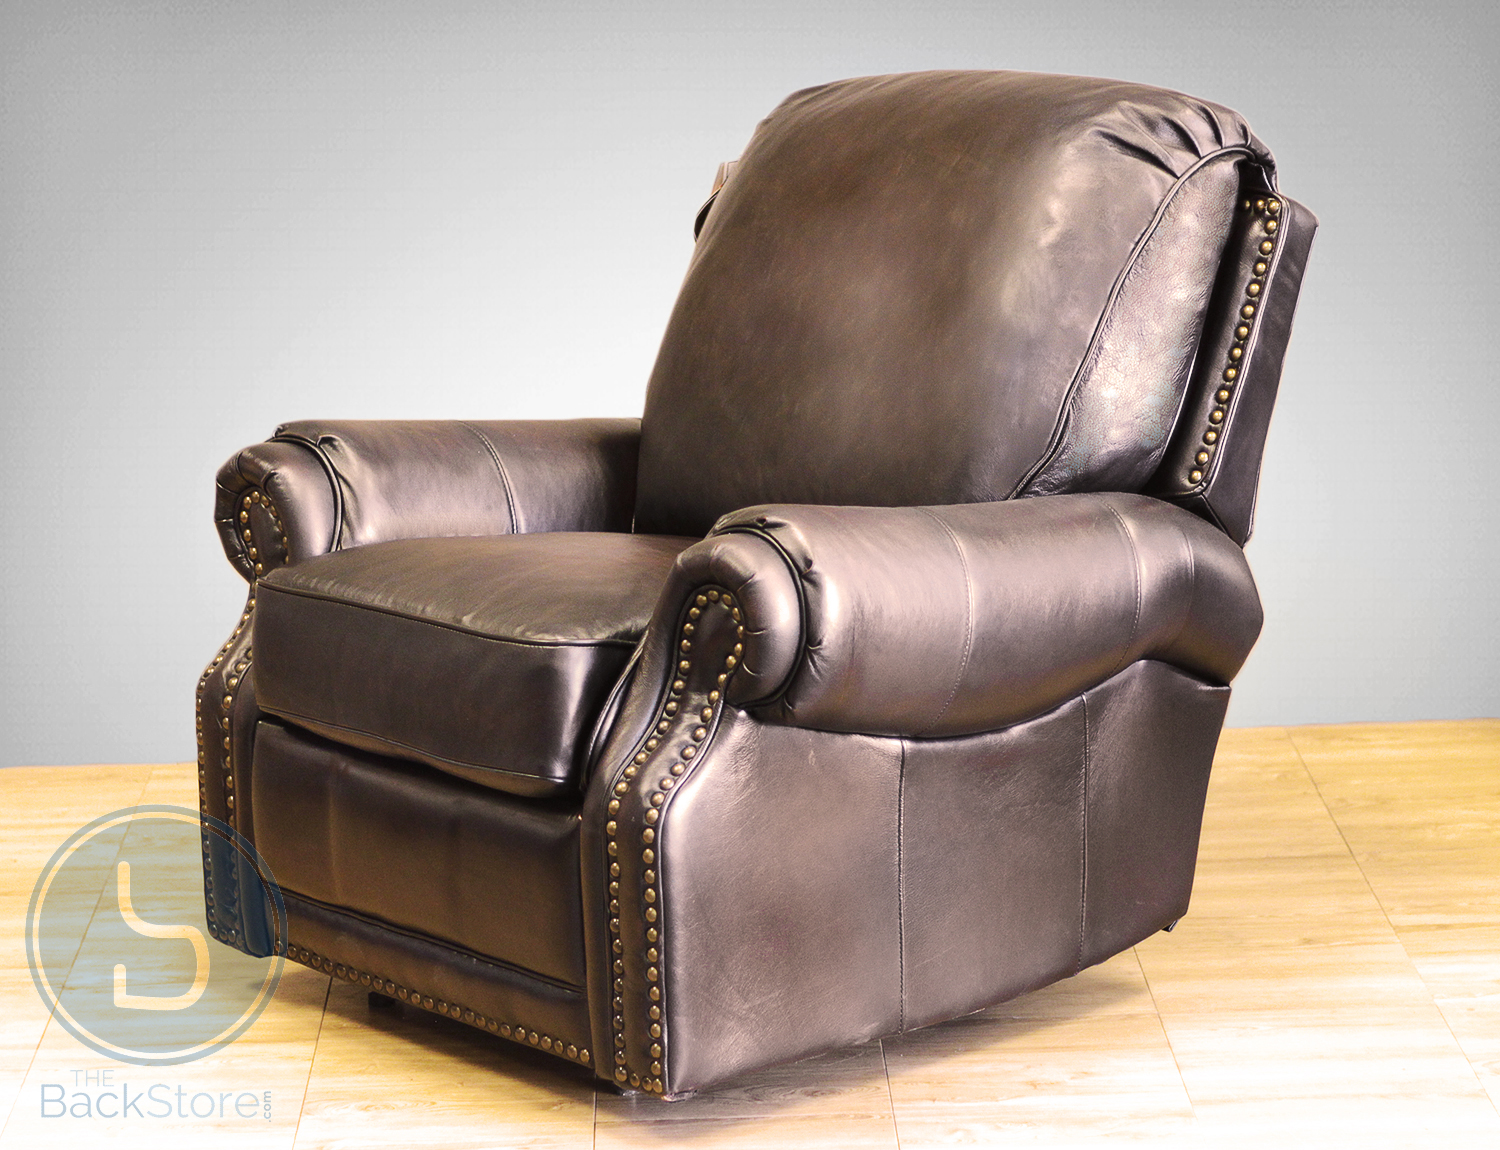 Barcalounger Premier II Recliner Chair & Barcalounger Premier II Leather Recliner Chair - Leather Recliner ... islam-shia.org